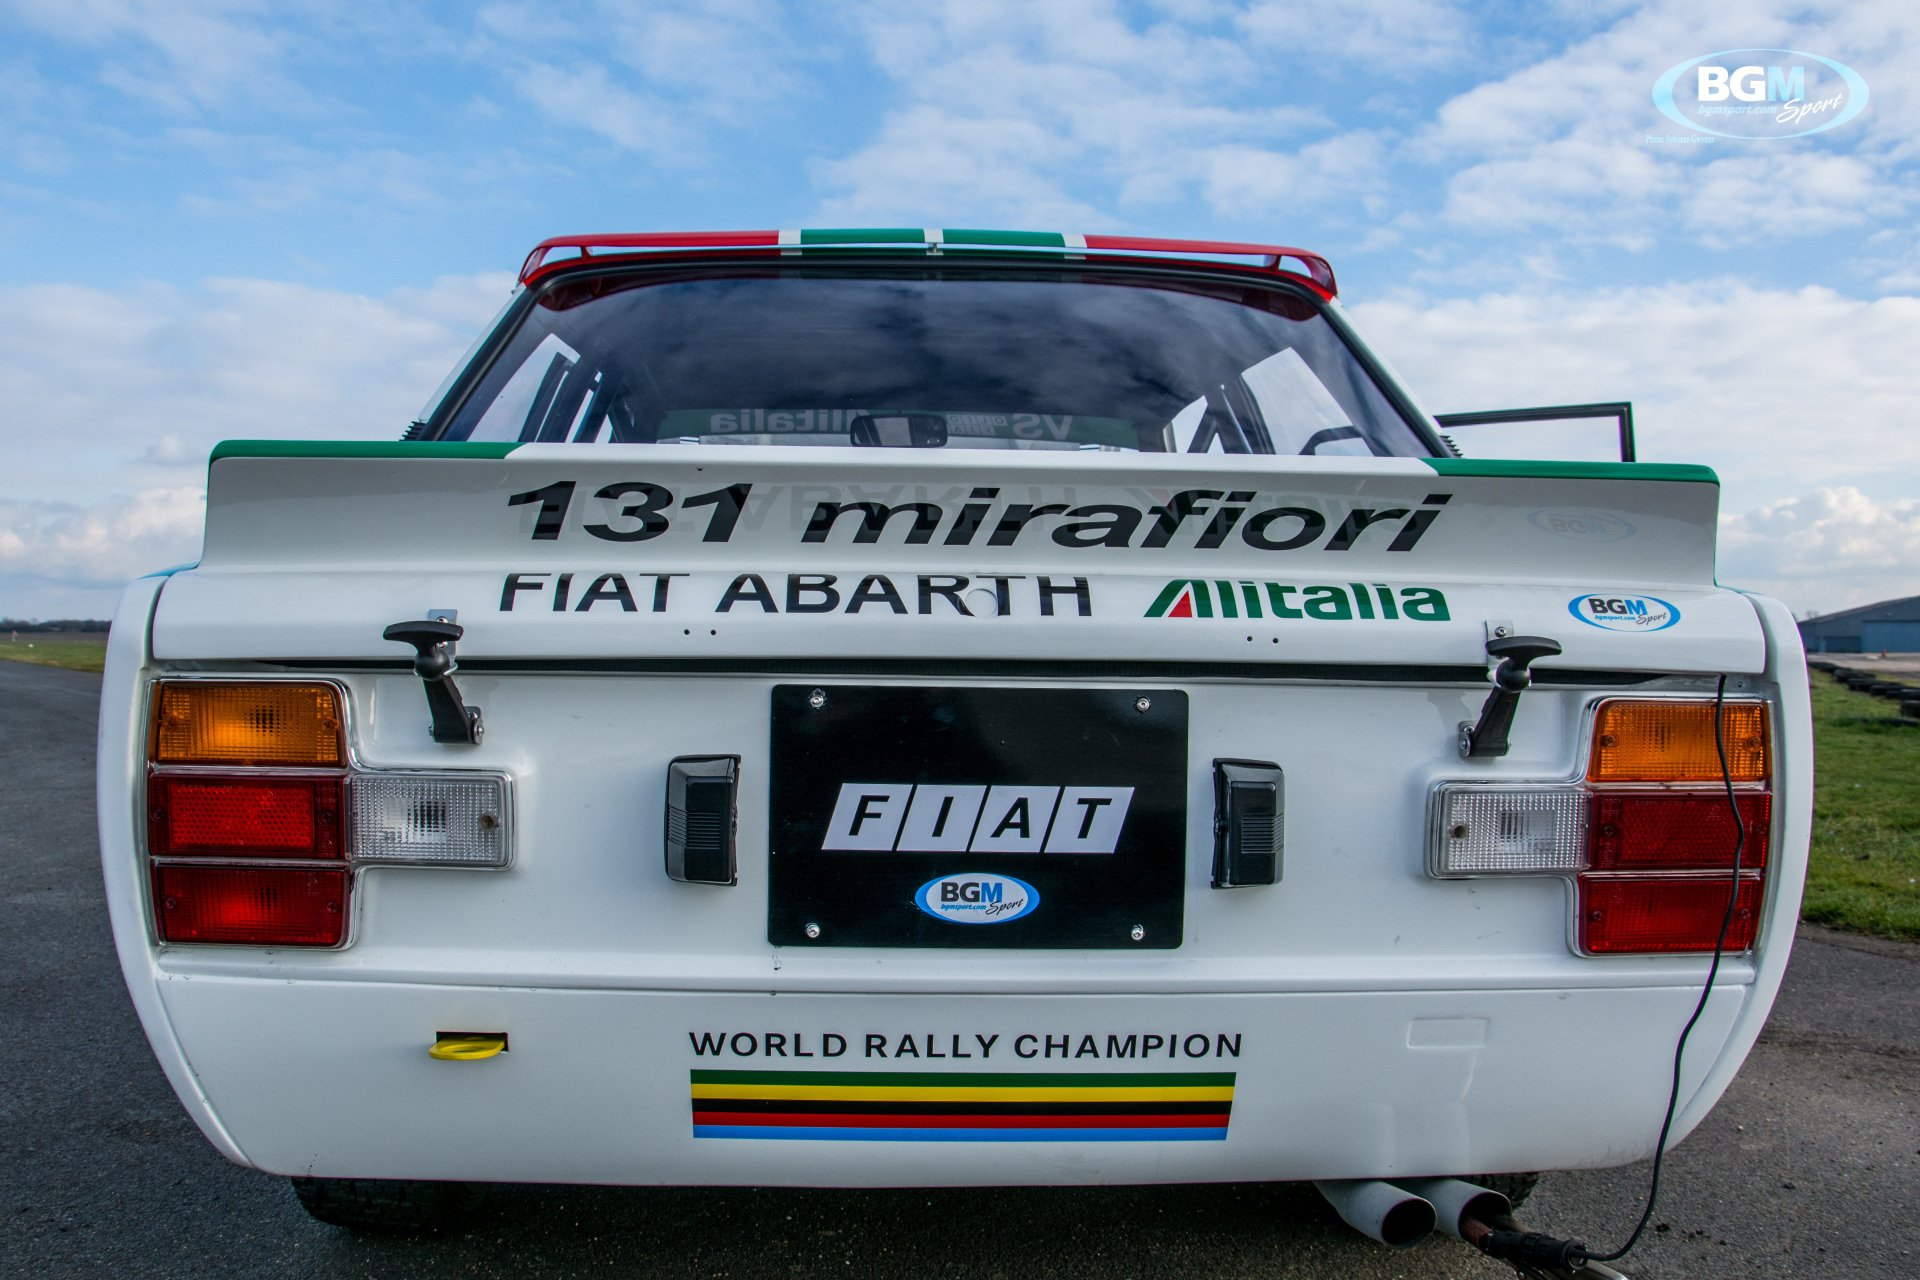 fiat-131-abarth-grp-4-rally-car-41